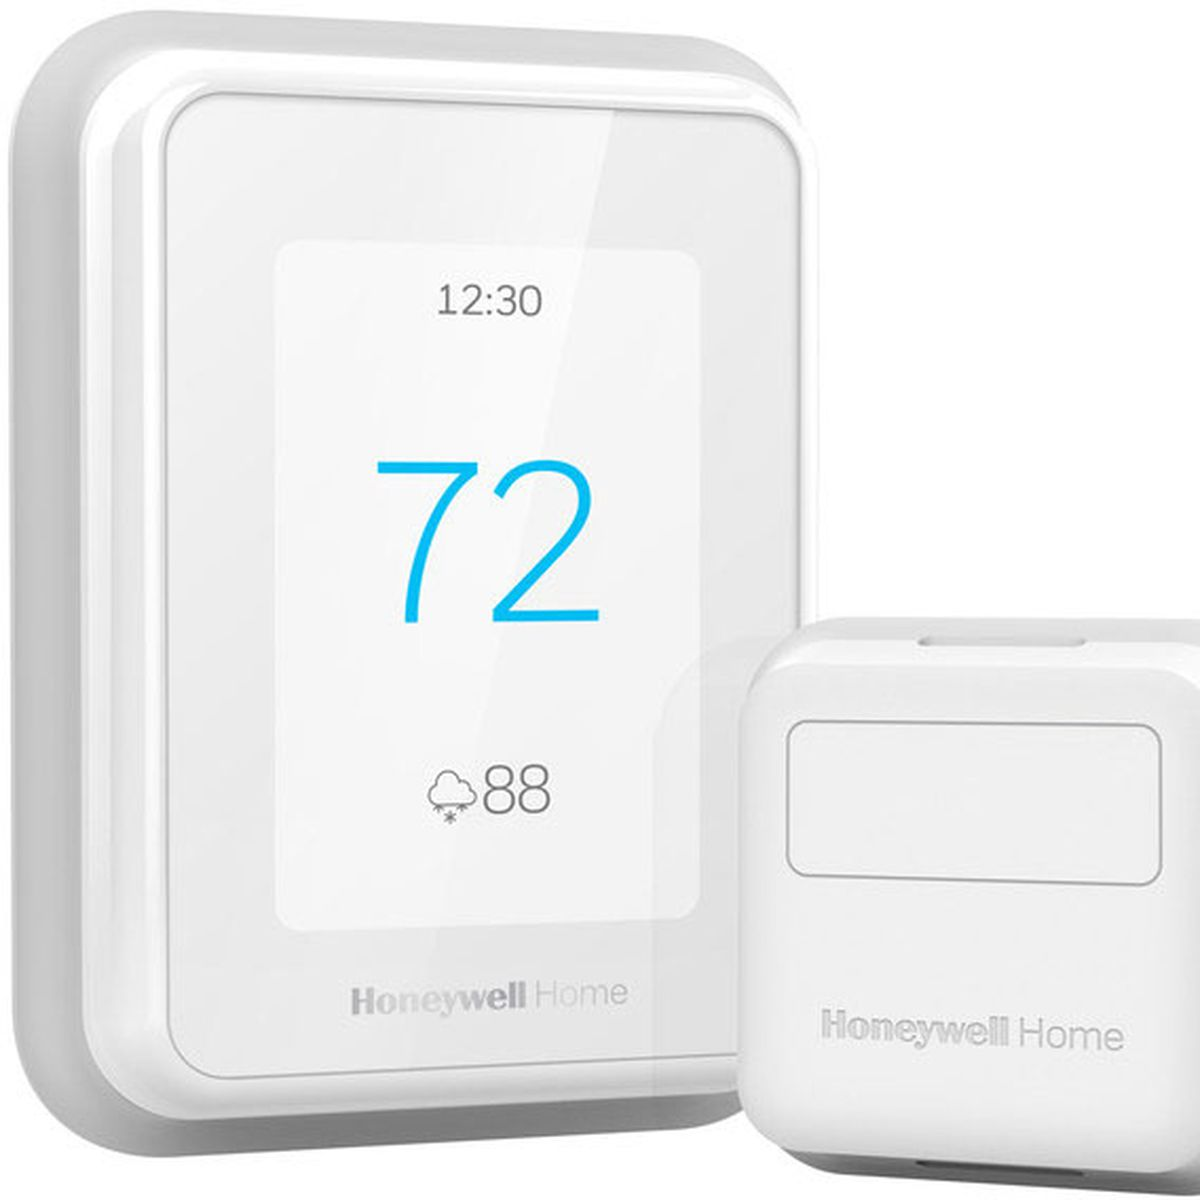 Ces 2019 Honeywell Home T9 And T10 Pro Smart Thermostats Debut With Per Room Temperature Control Homekit Later This Year Macrumors